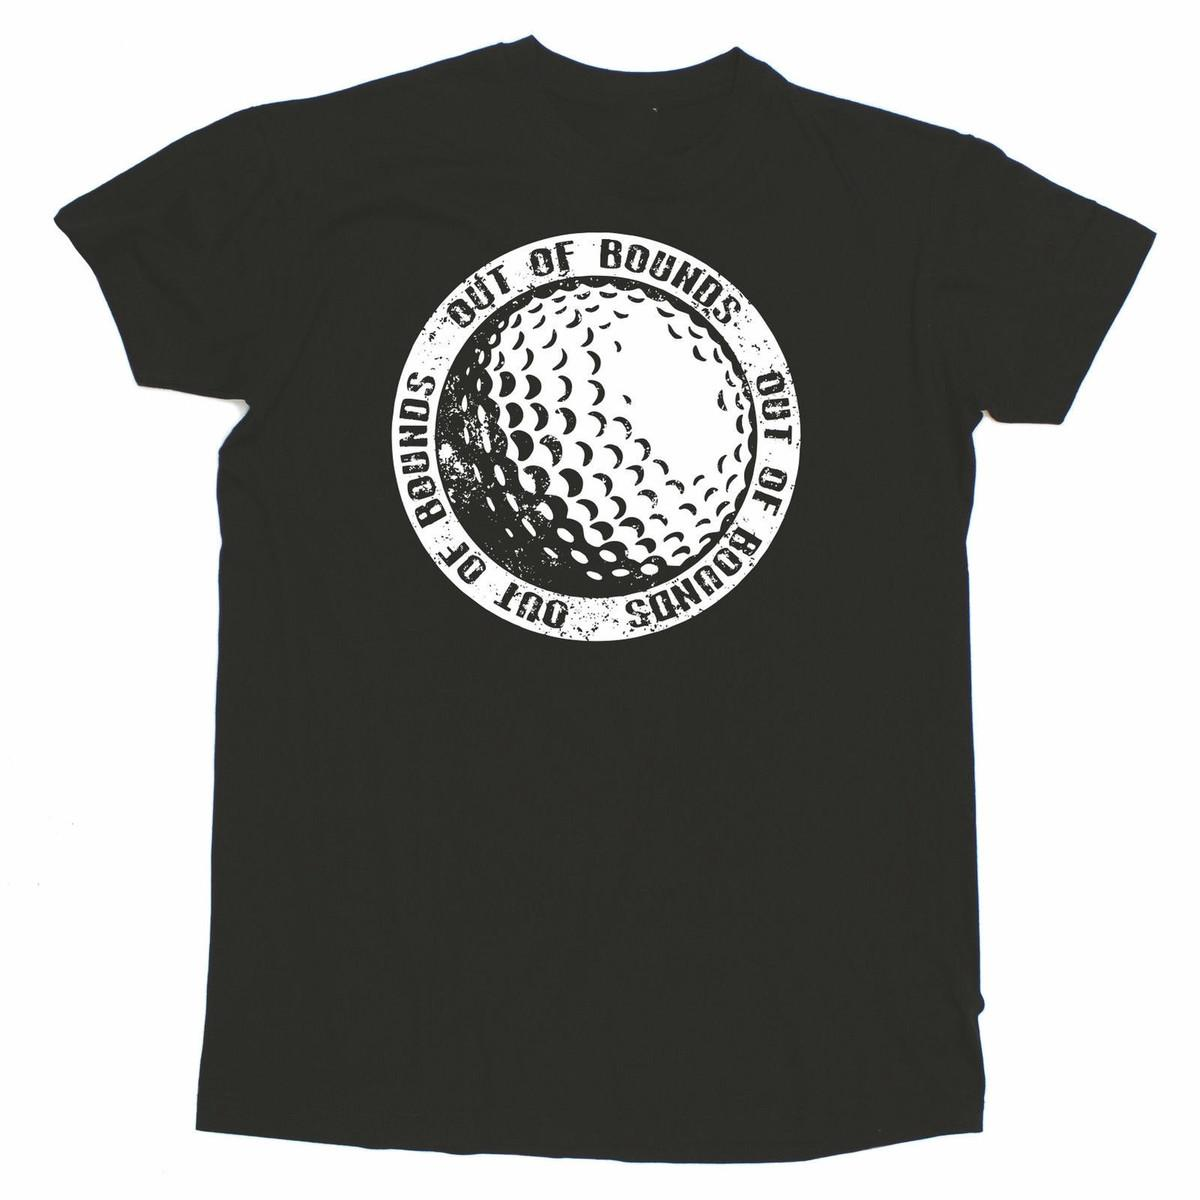 Golf Ball Chest T-SHIRT Golfer Golfing Fashion Funny Present birthday gift High Quality For Man Better Black Style top tee